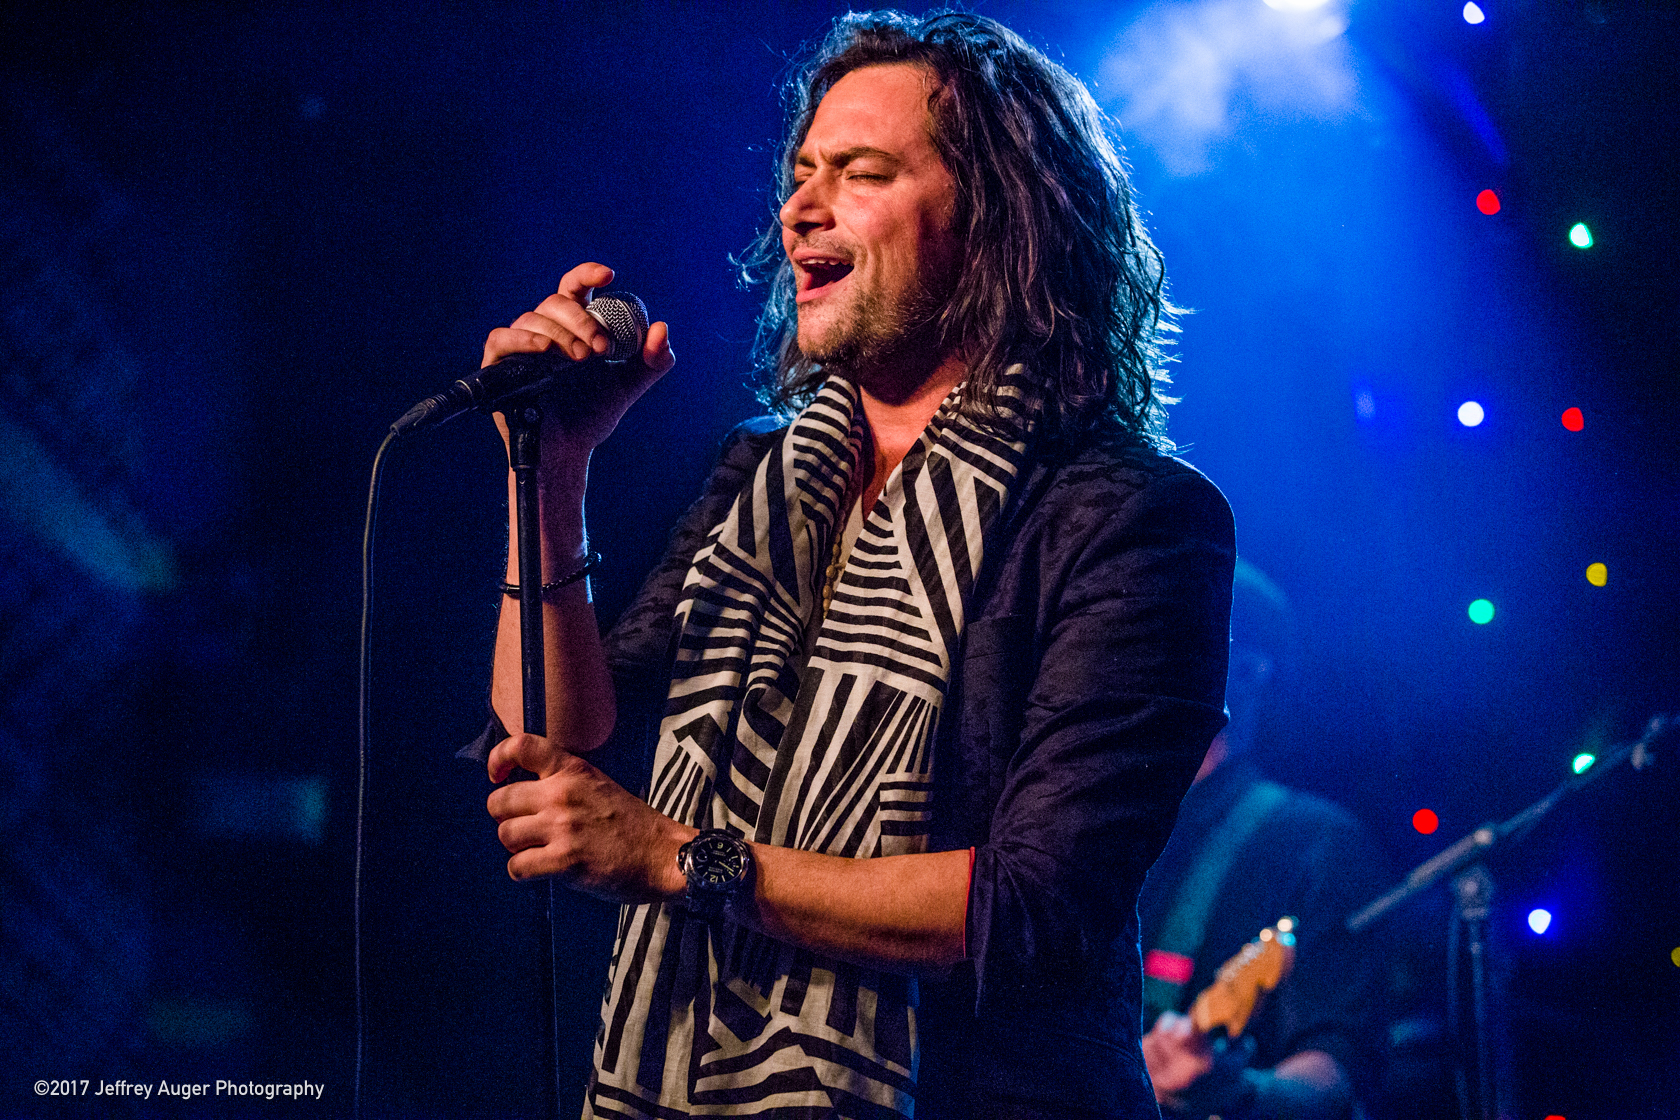 Constantine Maroulis at MexicaliLive